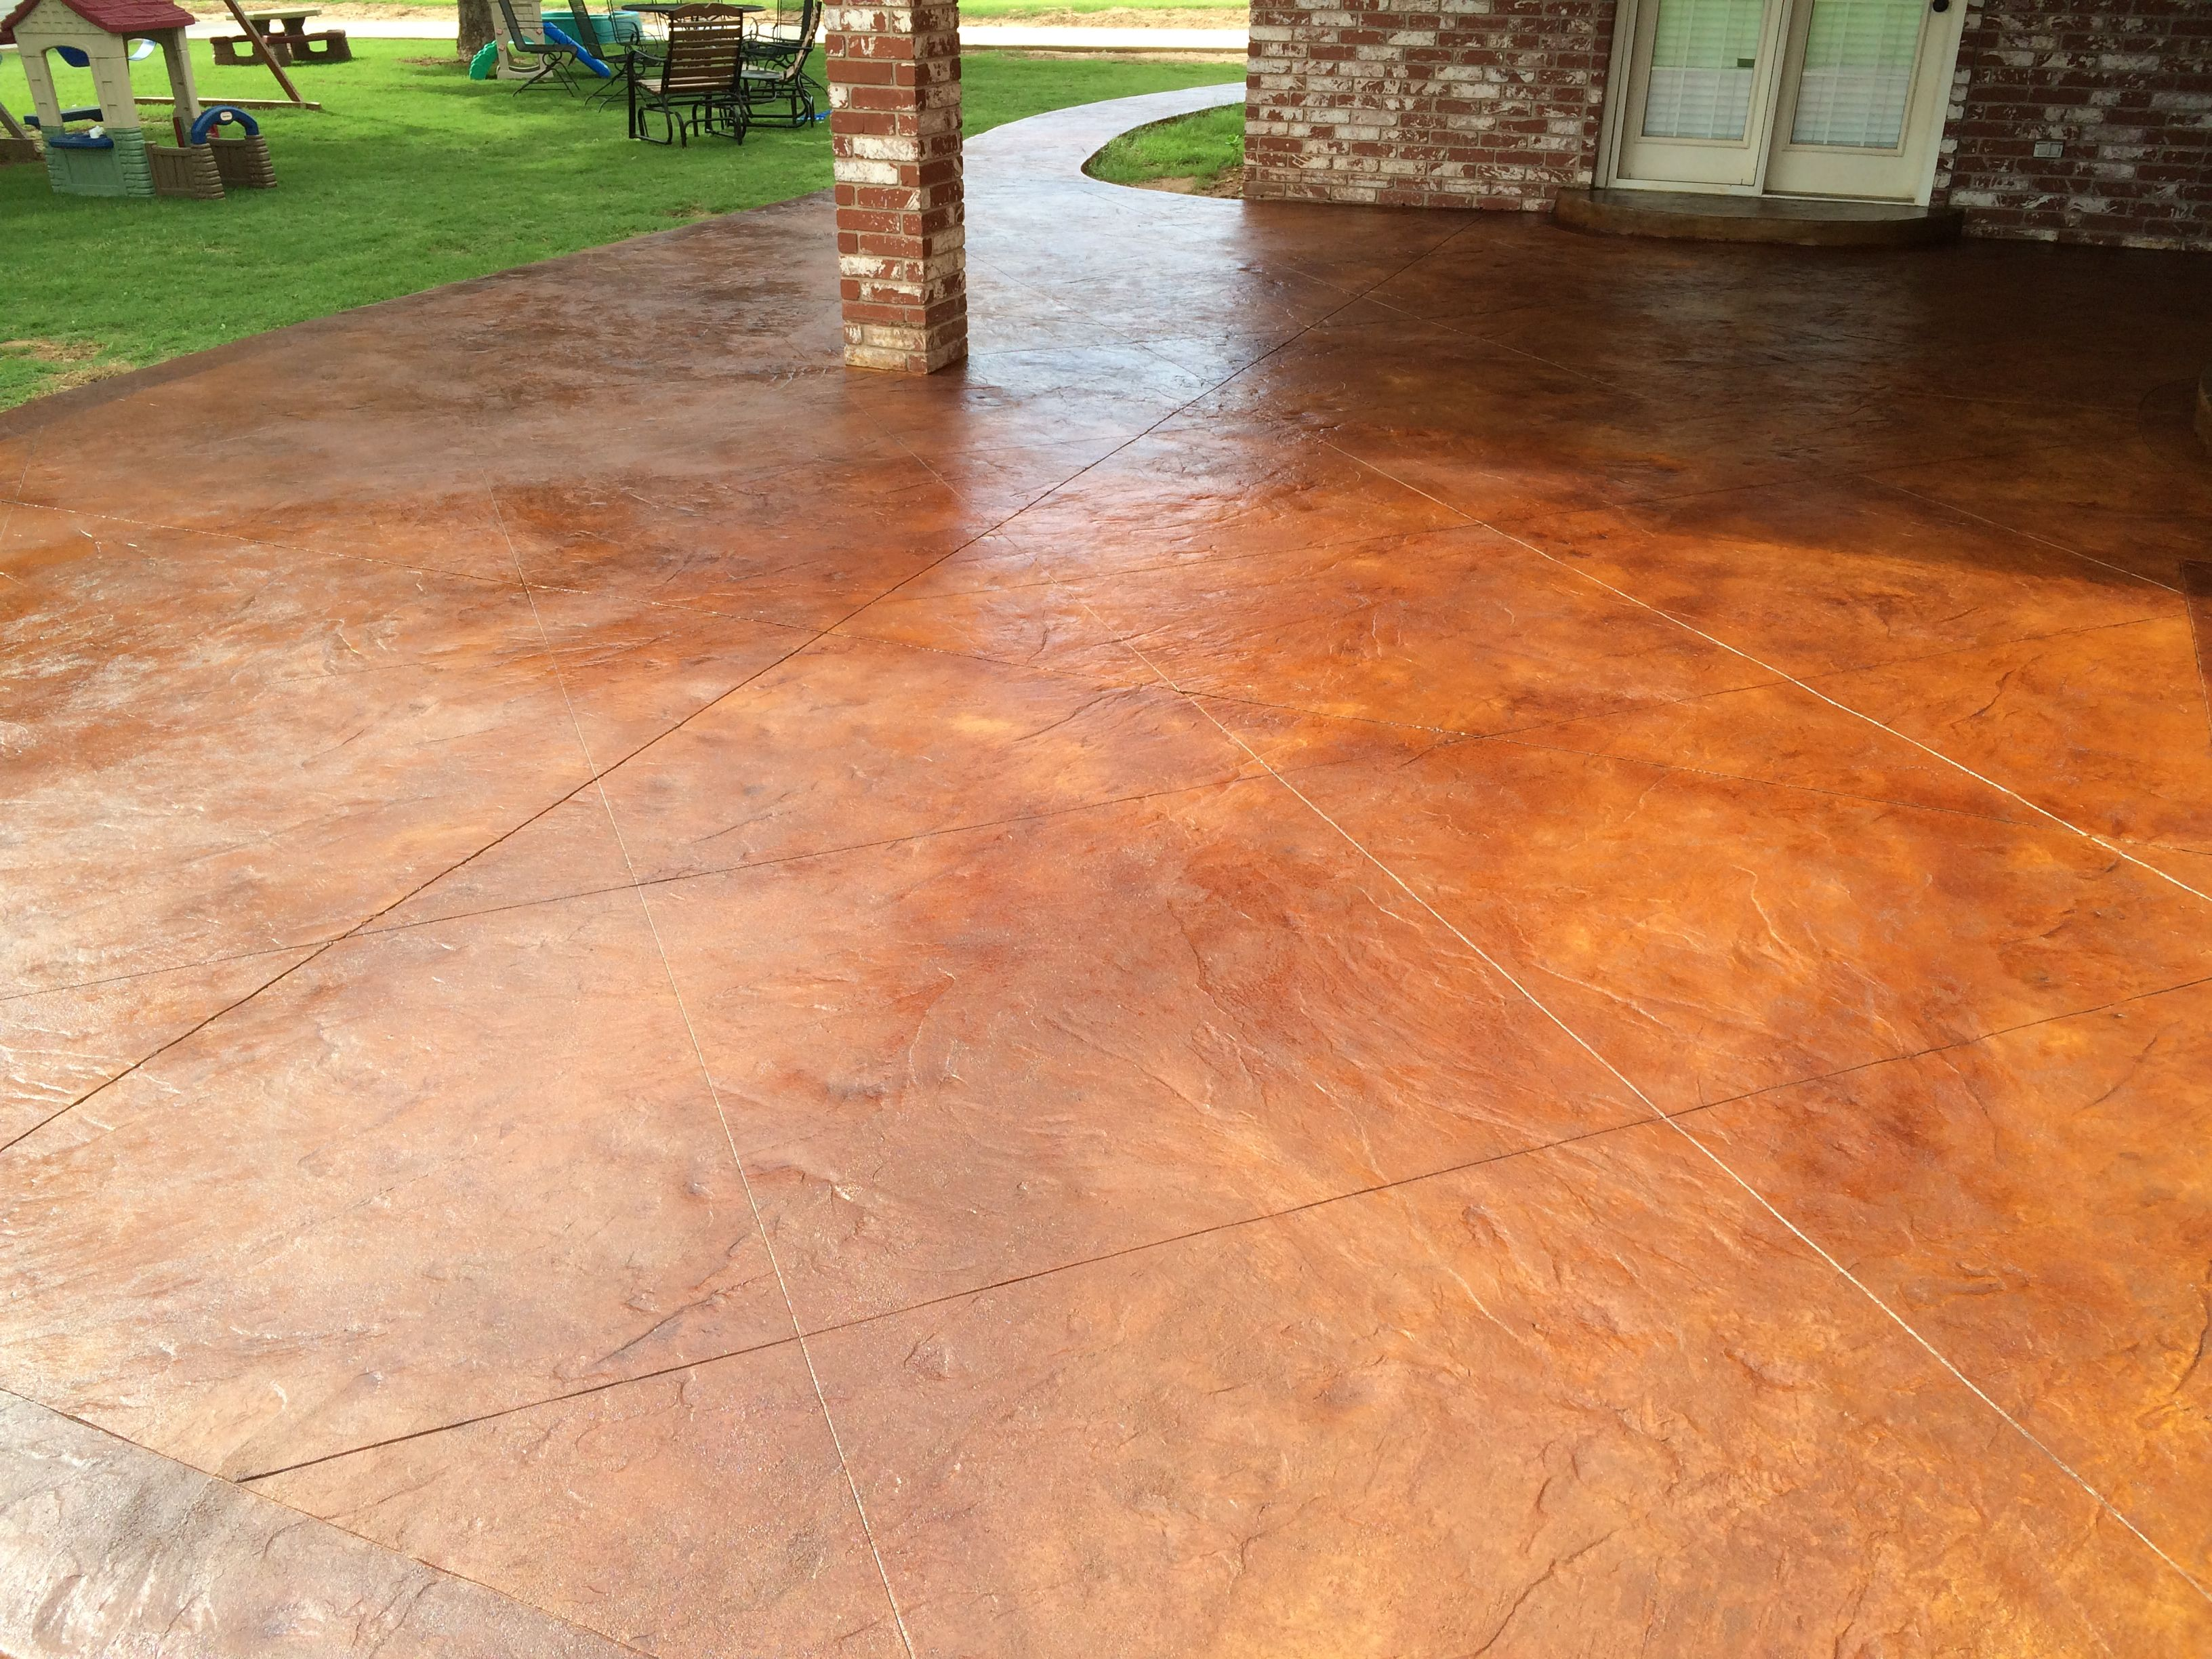 Italian Slate, Stamped Concrete, Stained Concrete, Vintage Umber Stain,  English Red Stain